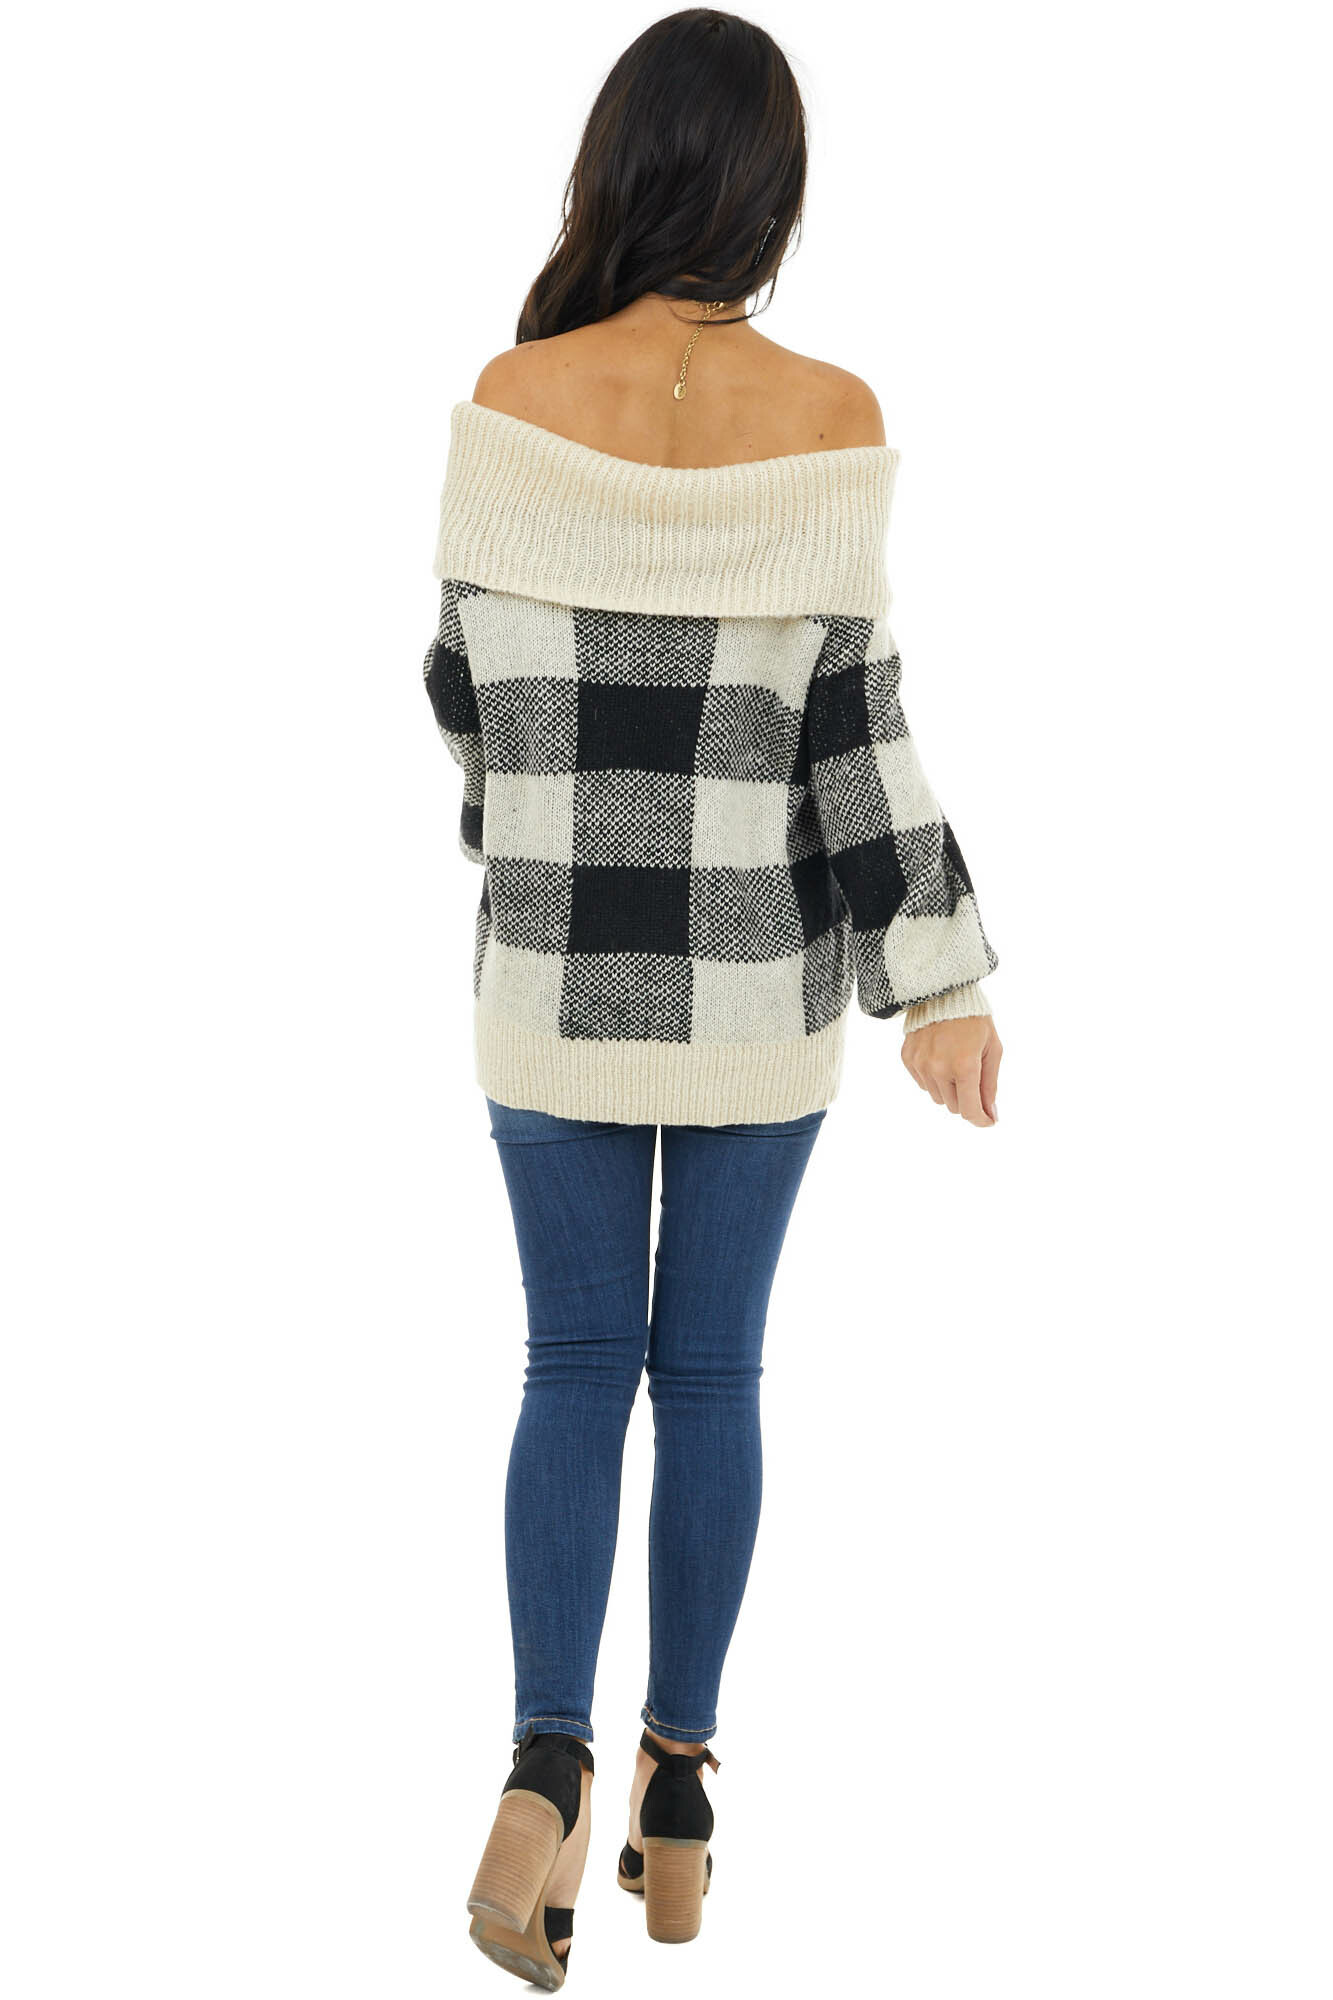 Ivory and Black Buffalo Plaid Off the Shoulder Sweater